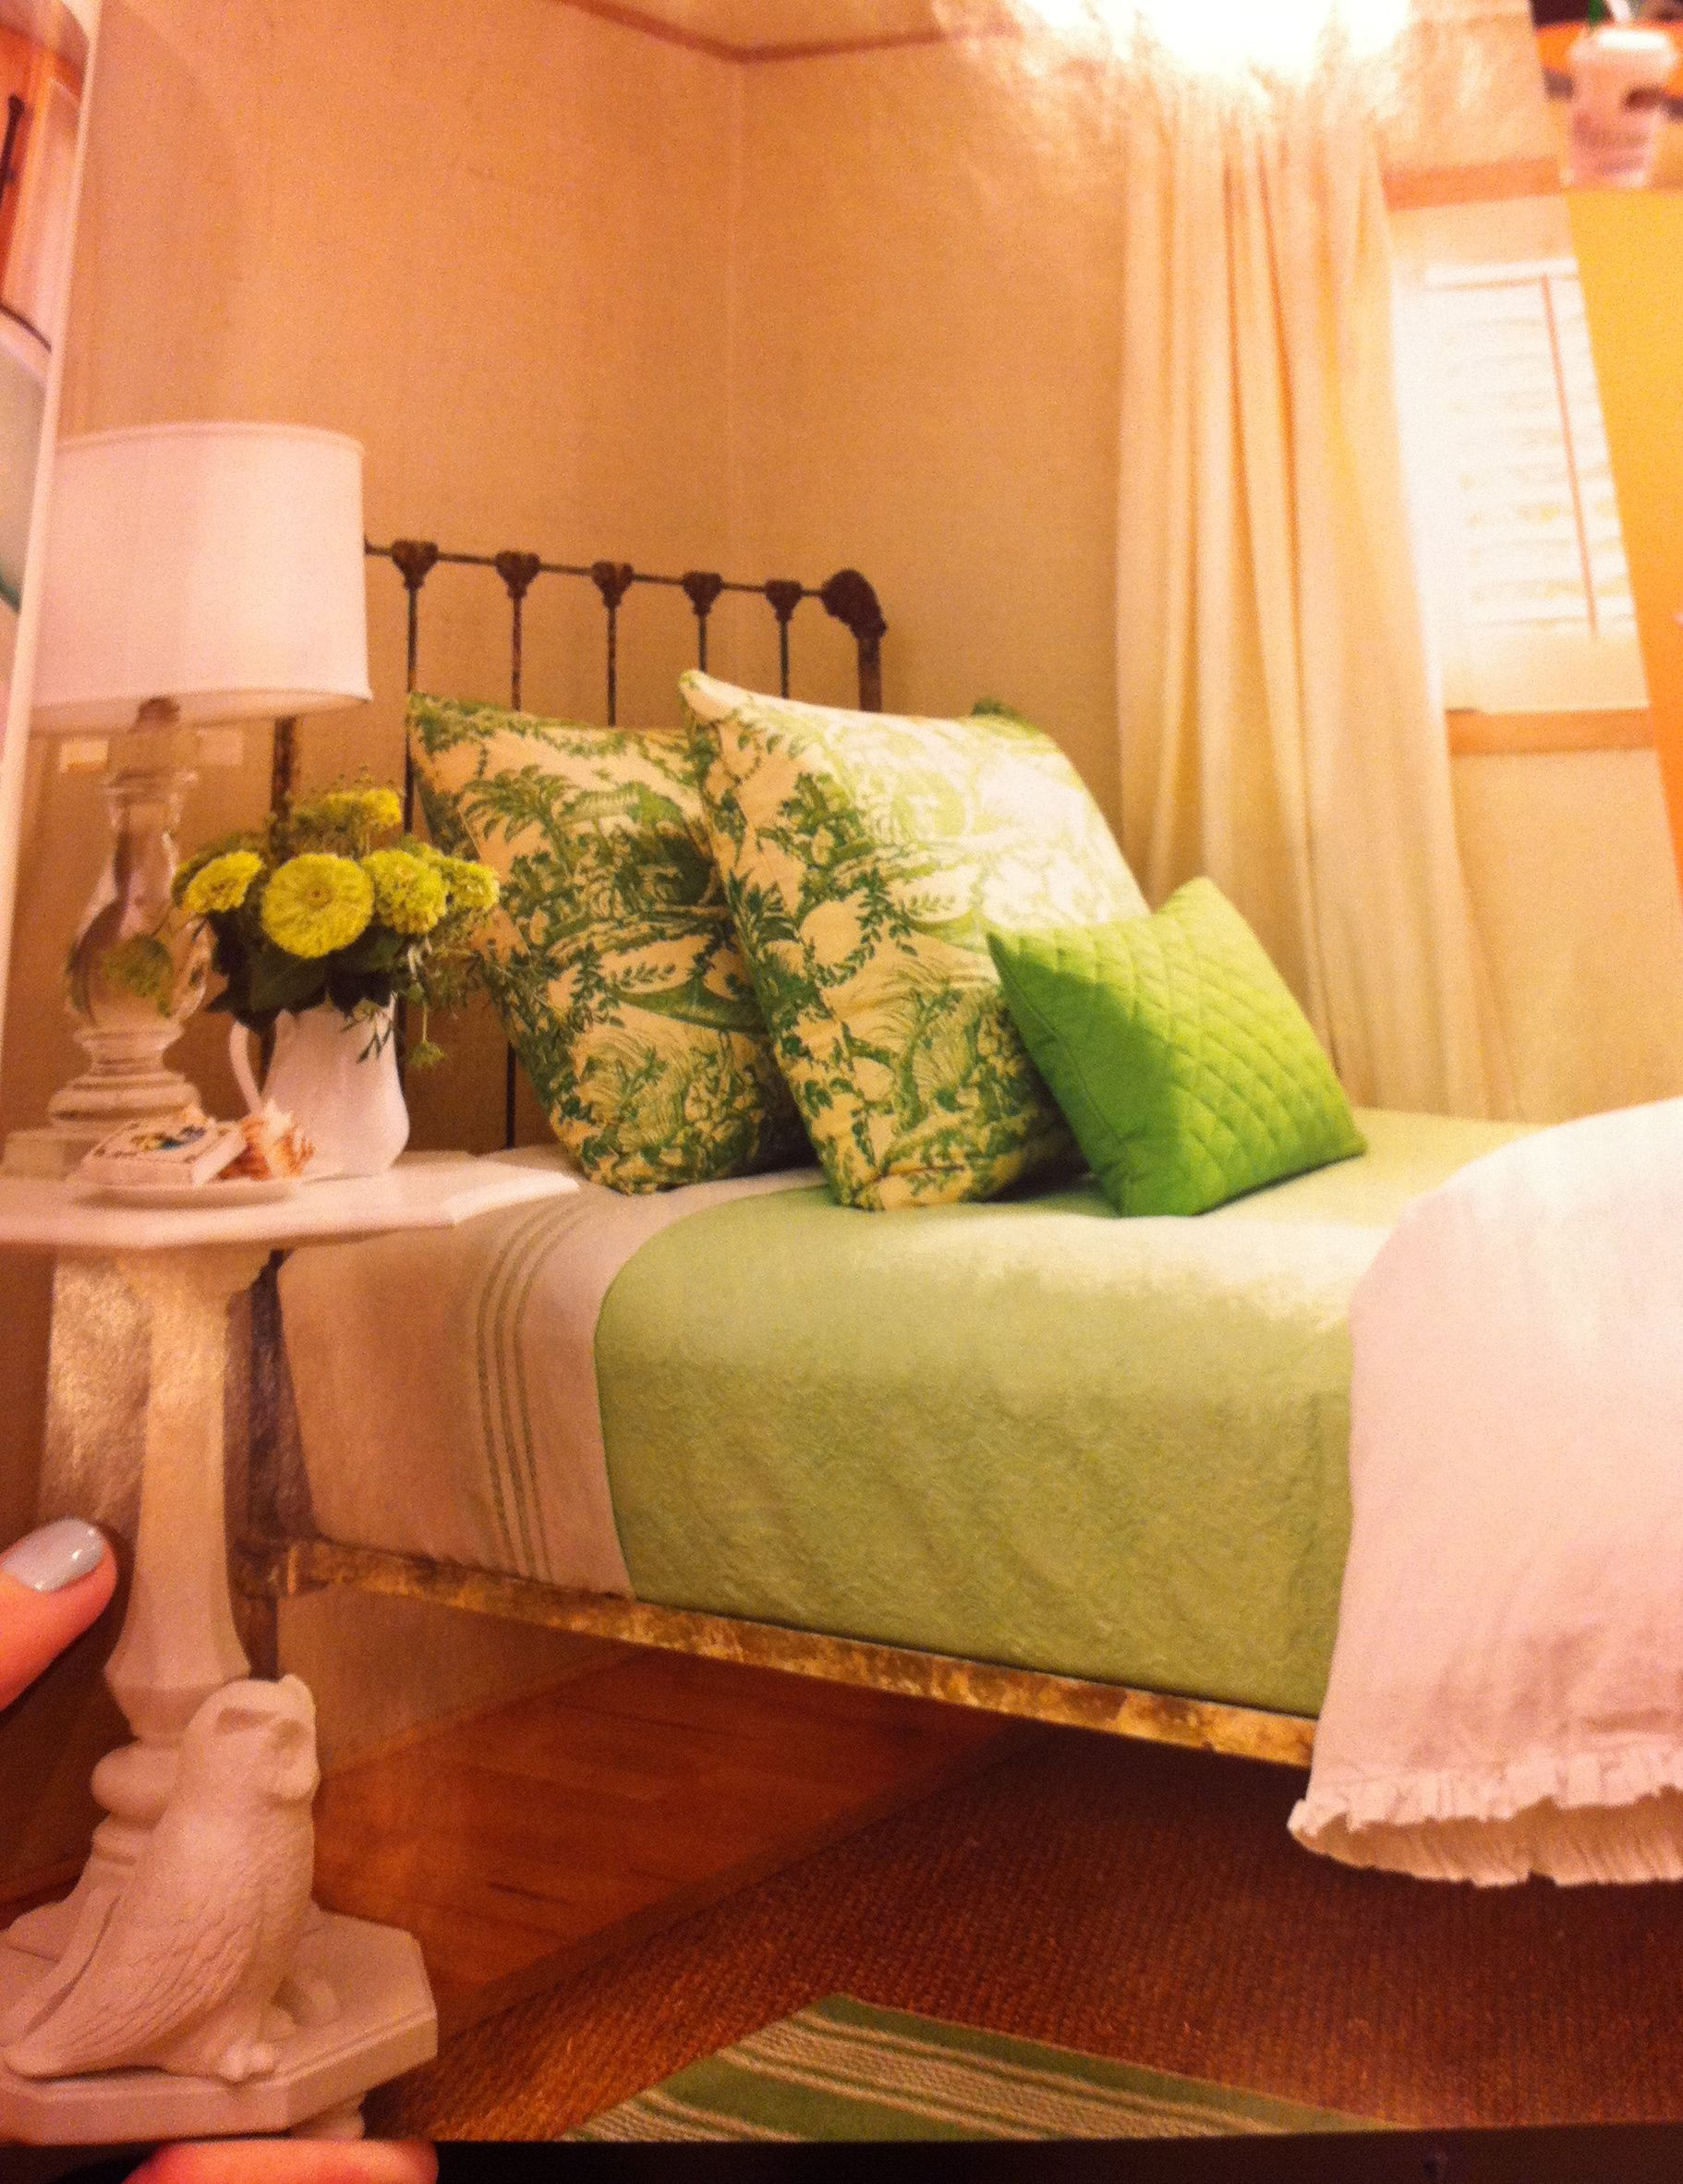 Pin by Kate Landry on bedrooms   Sanctuary bedroom ...